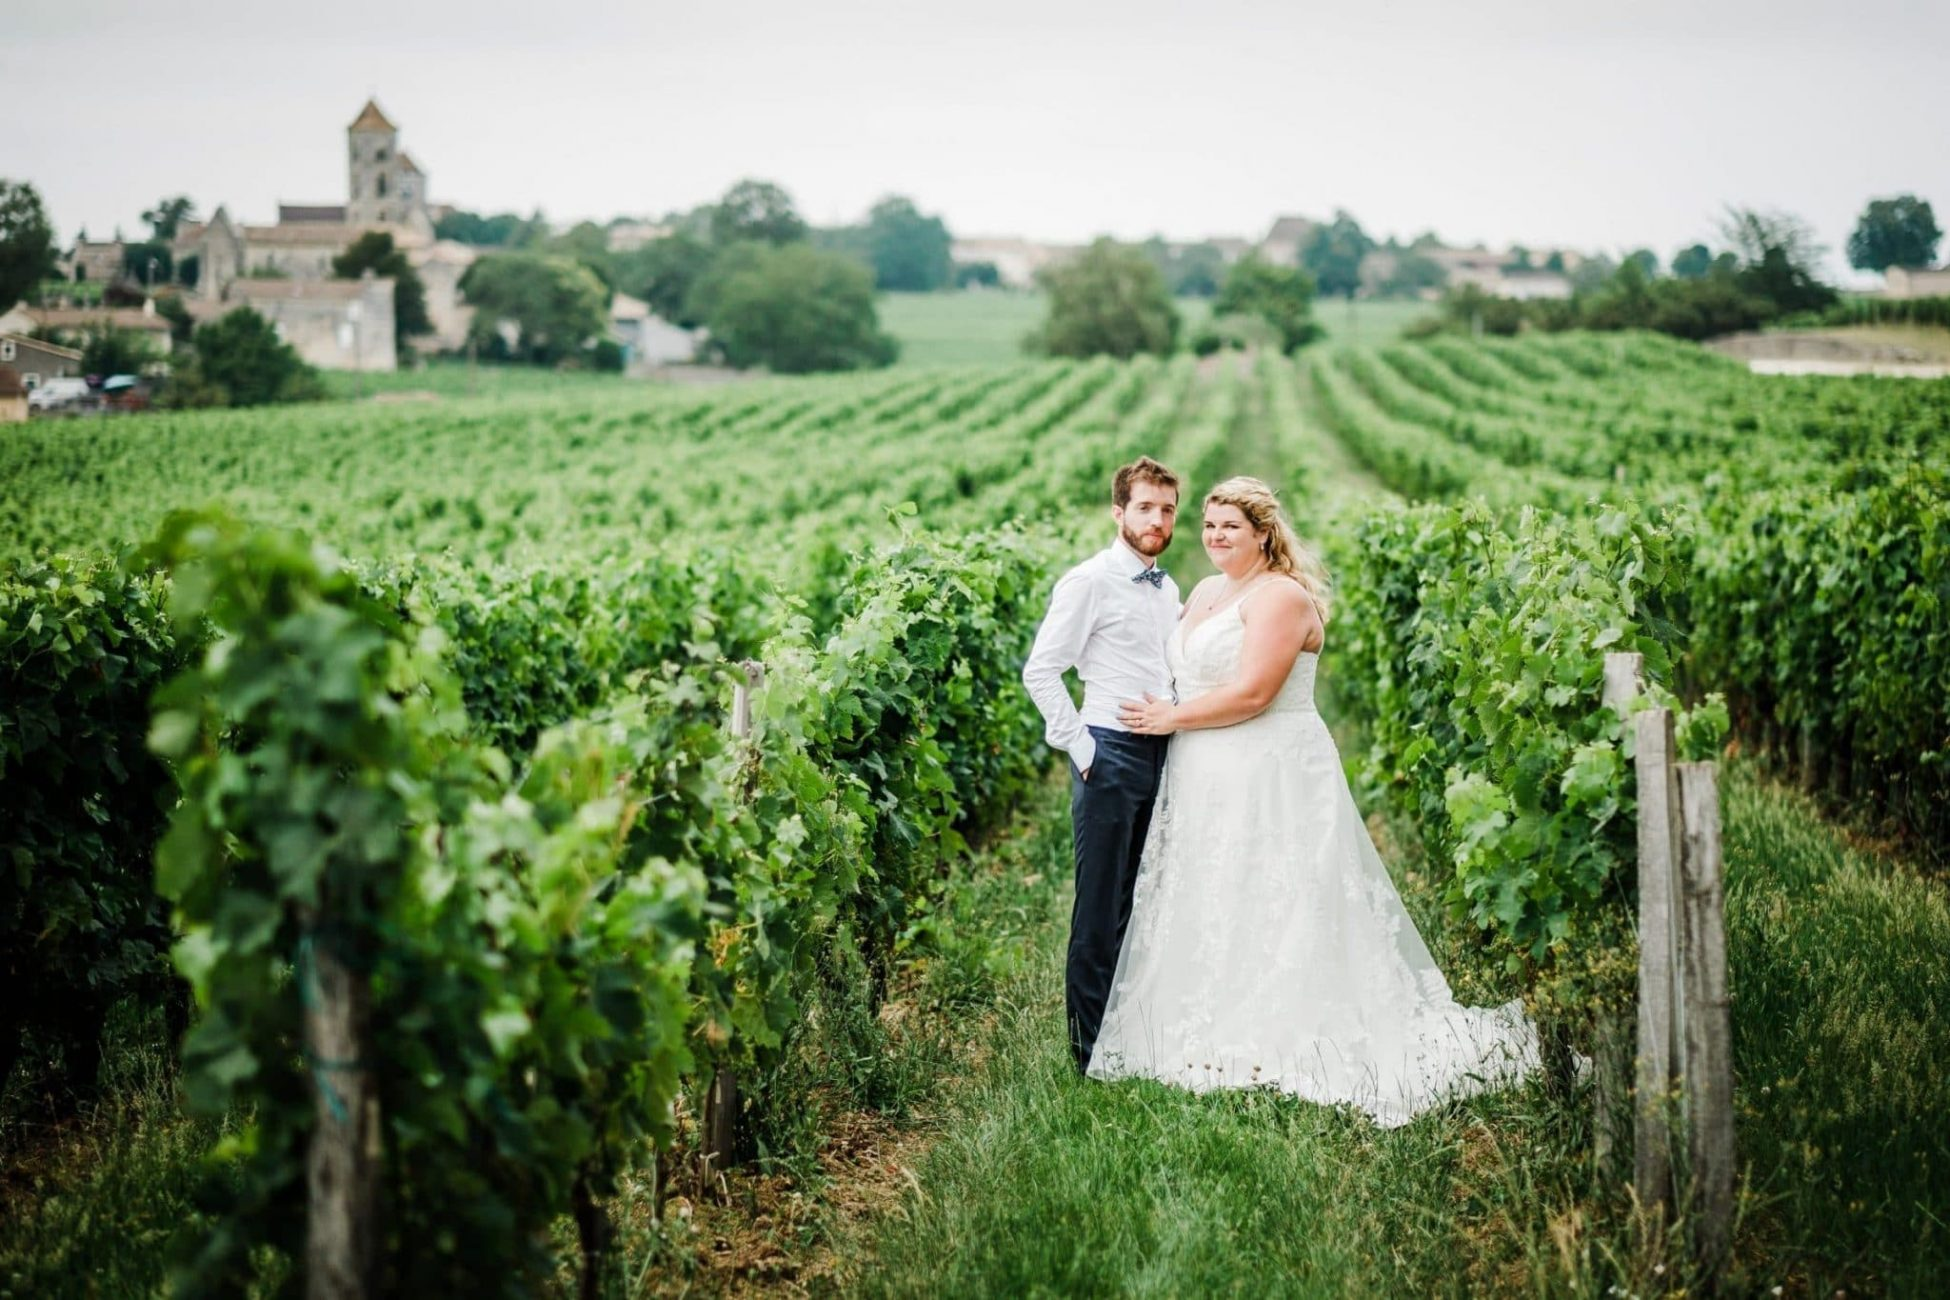 A wedding portrait at Chateu St Georges, France